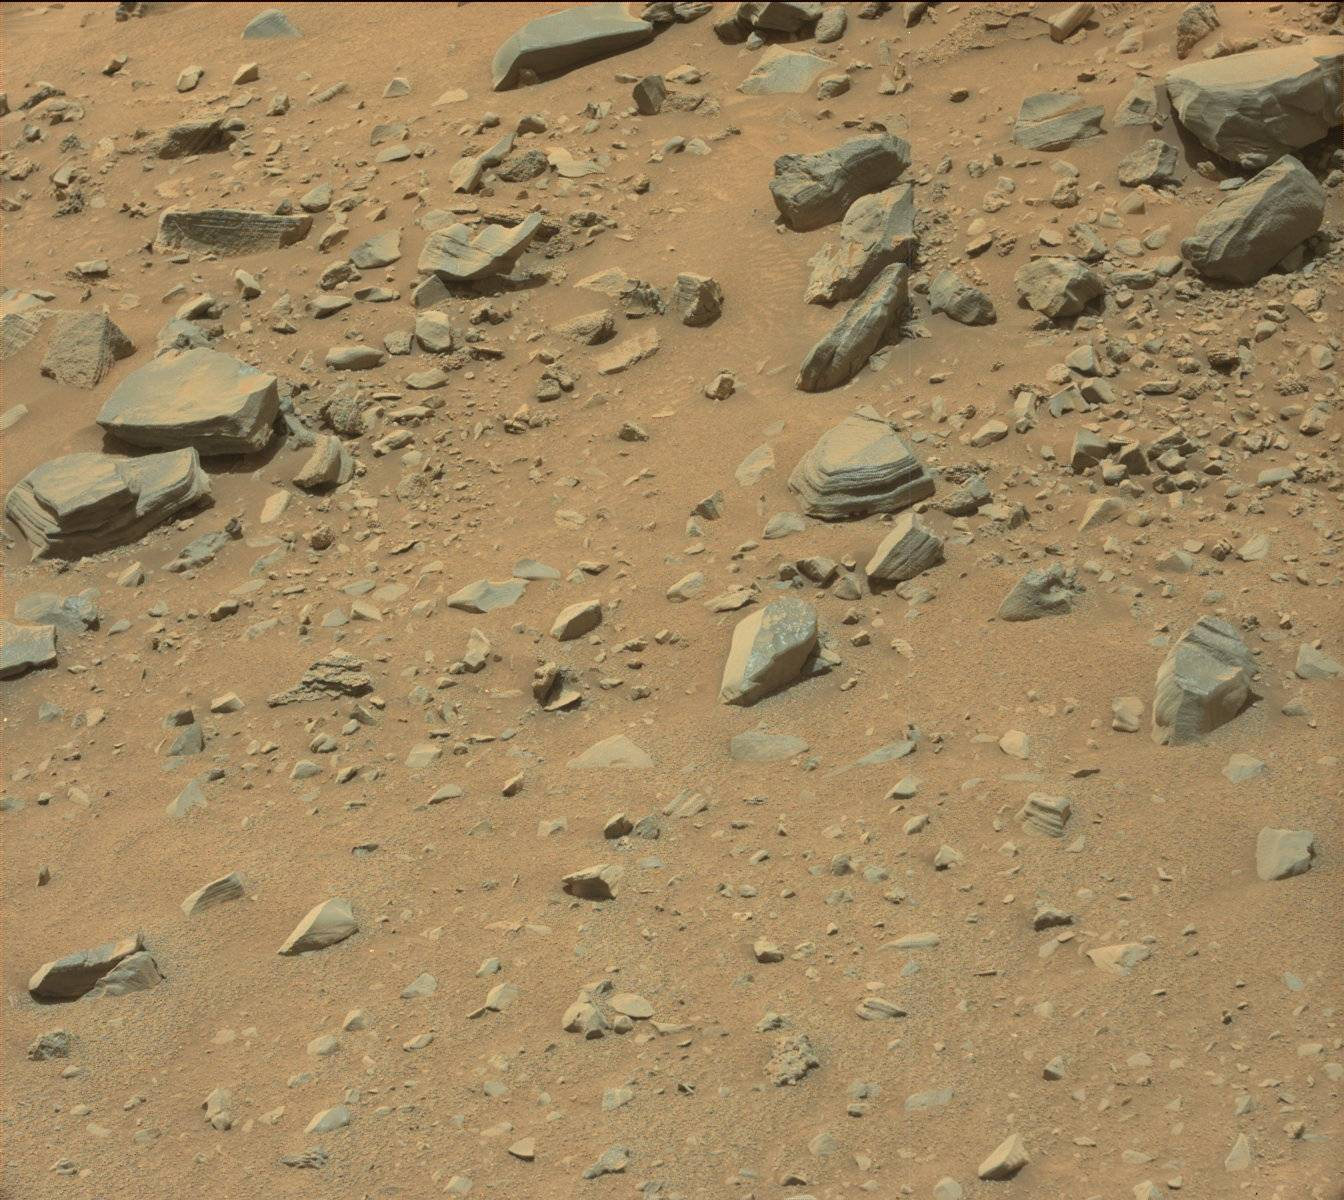 mars rovers destroyed - photo #12